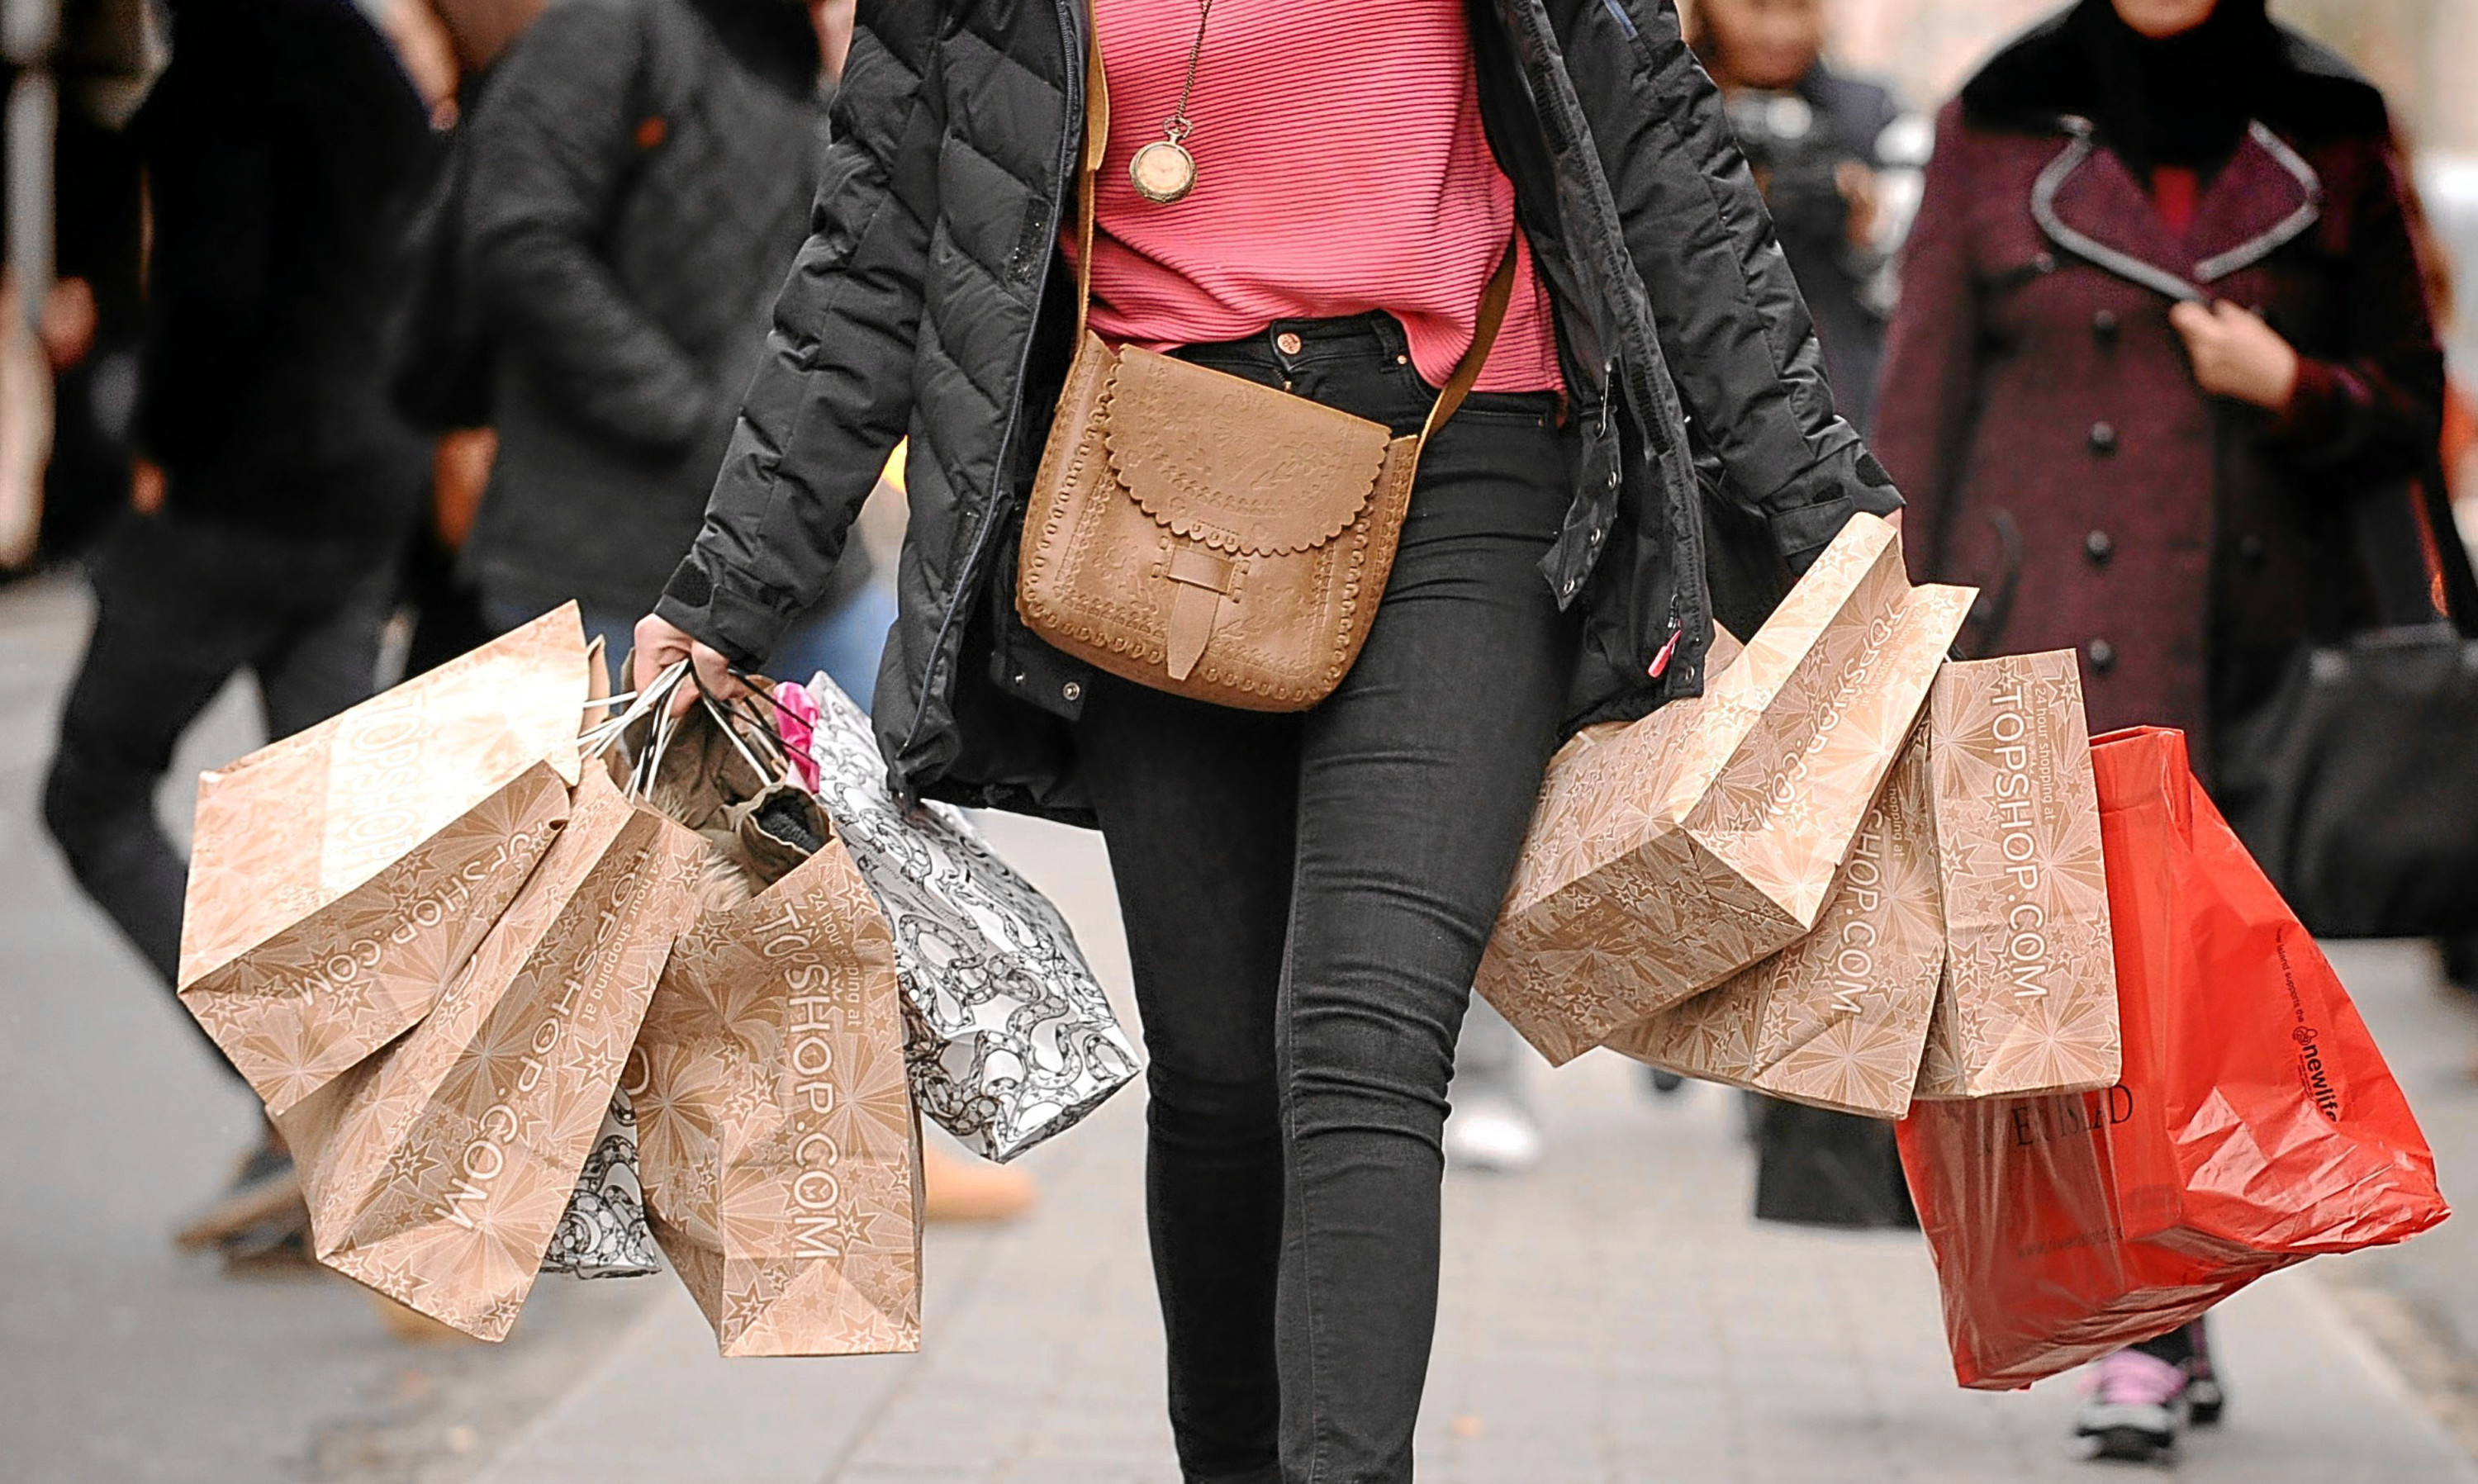 Traditional shopping habits are changing.